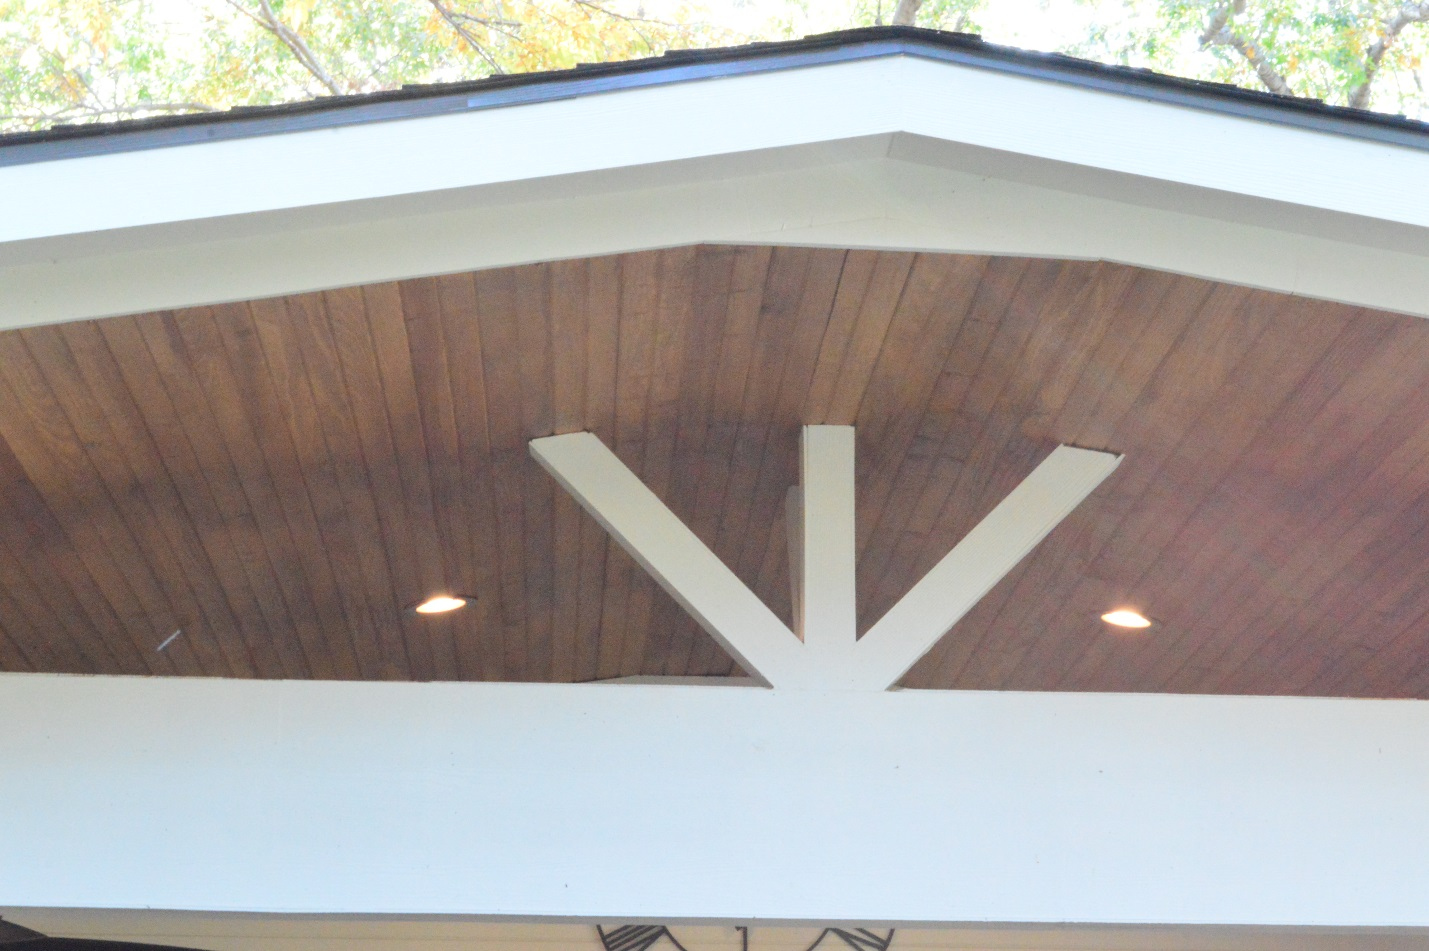 Custom-patio-cover-with-tongue-and-groove-ceiling-with-recessed-lighting